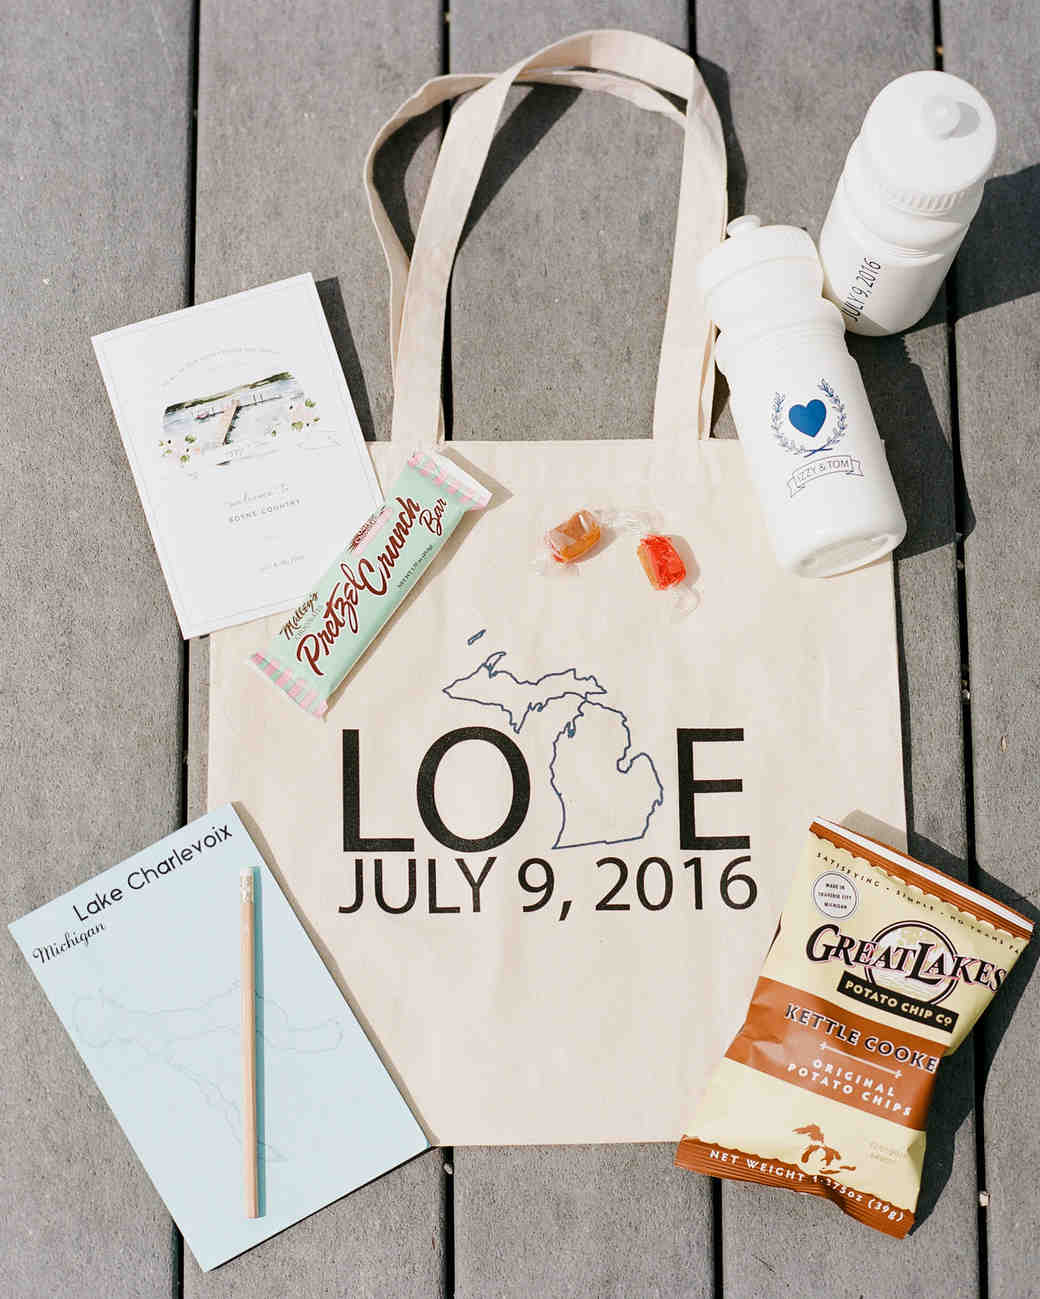 izzy tom wedding welcomebag